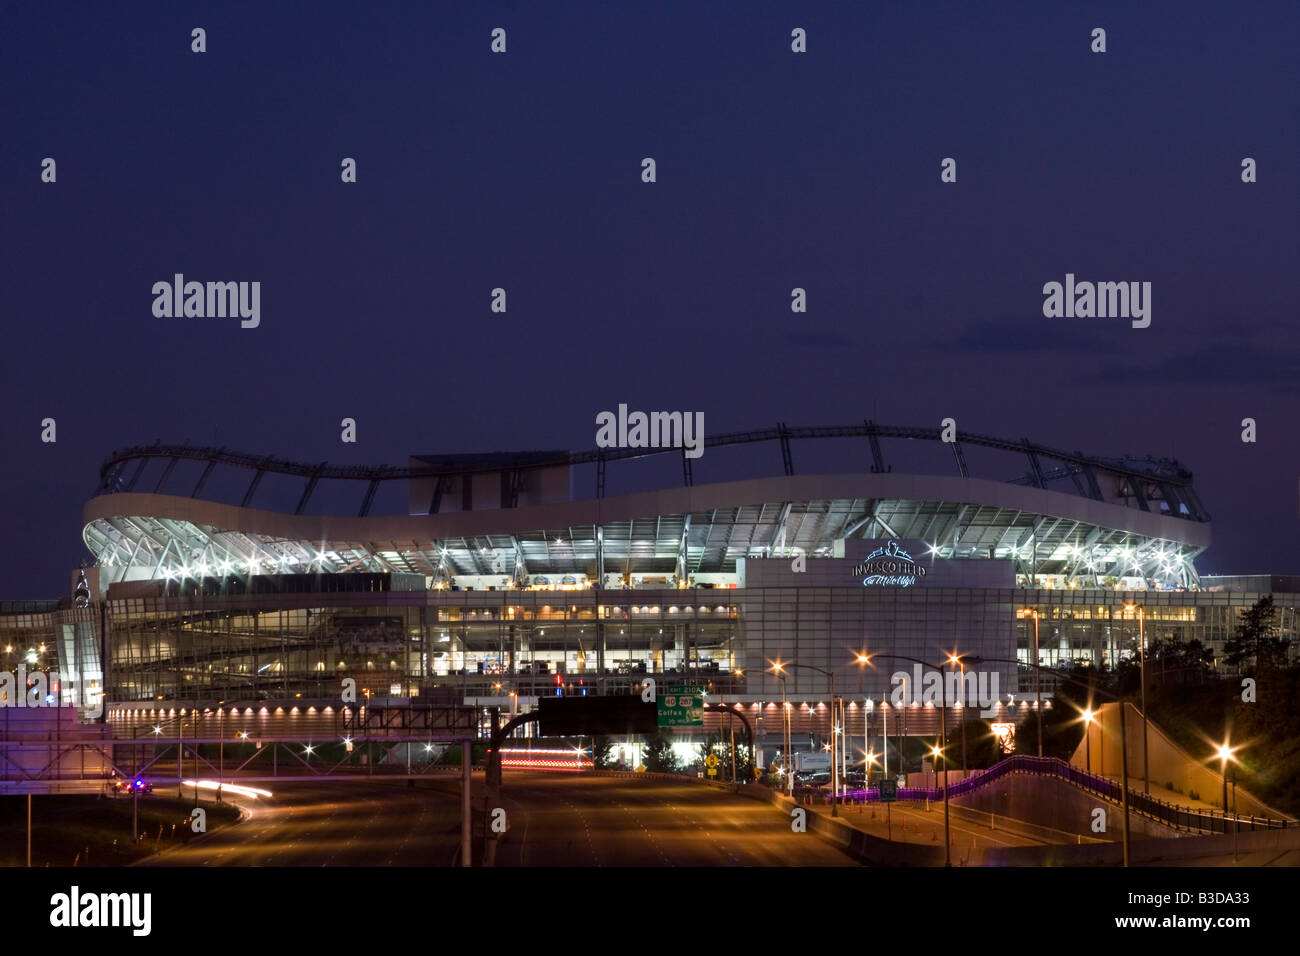 INVESCO Field at Mile High the night Barack Obama delivered his speech accepting Democratic Presidential nomination. - Stock Image